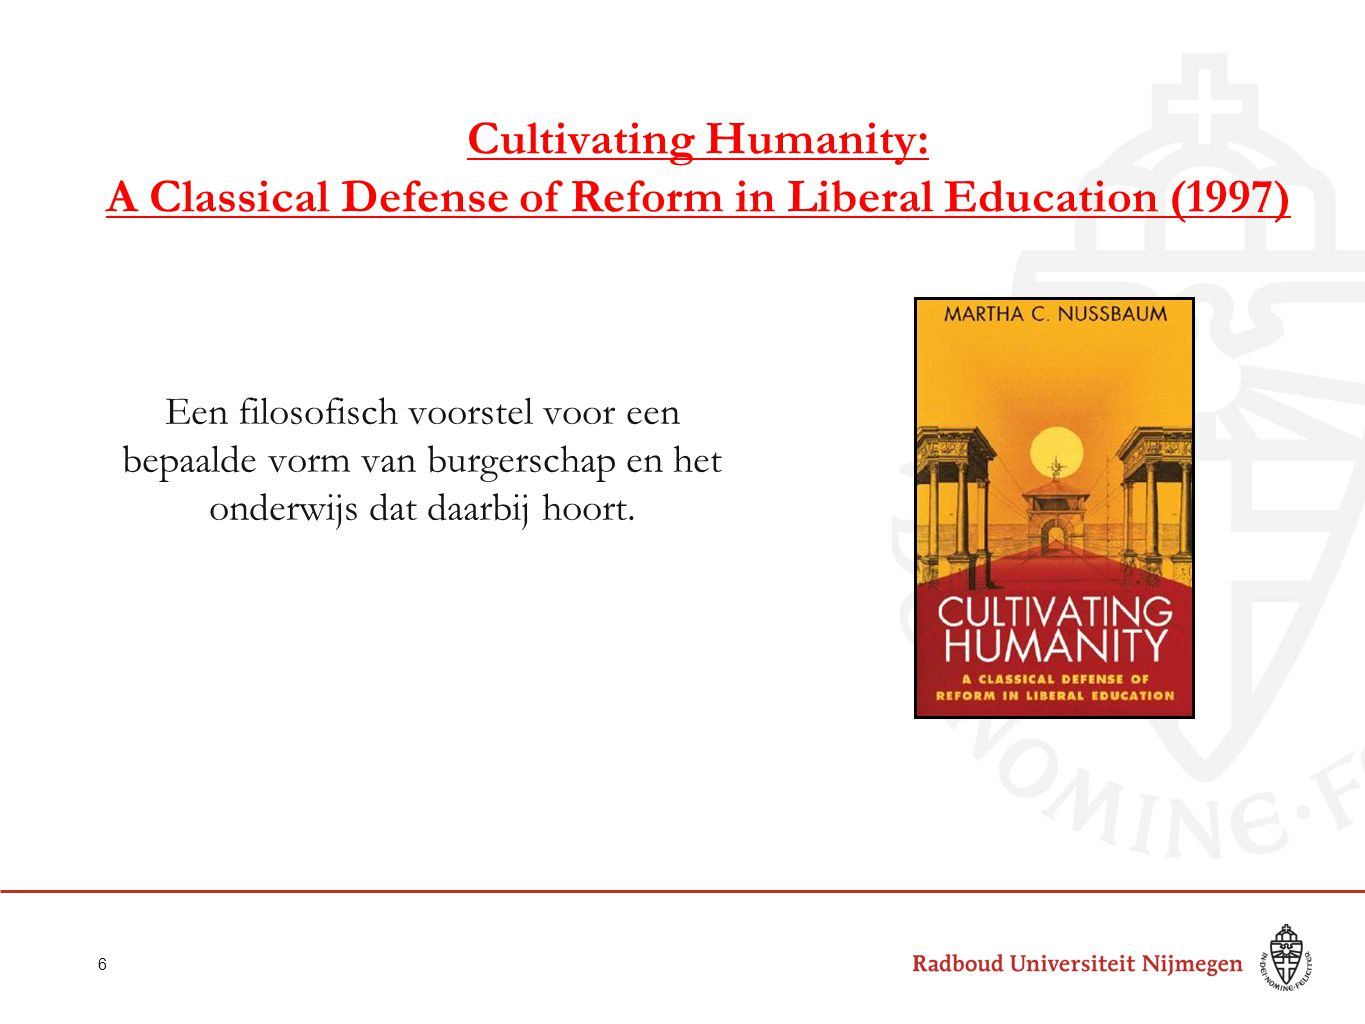 Cultivating Humanity: A Classical Defense of Reform in Liberal Education (1997)